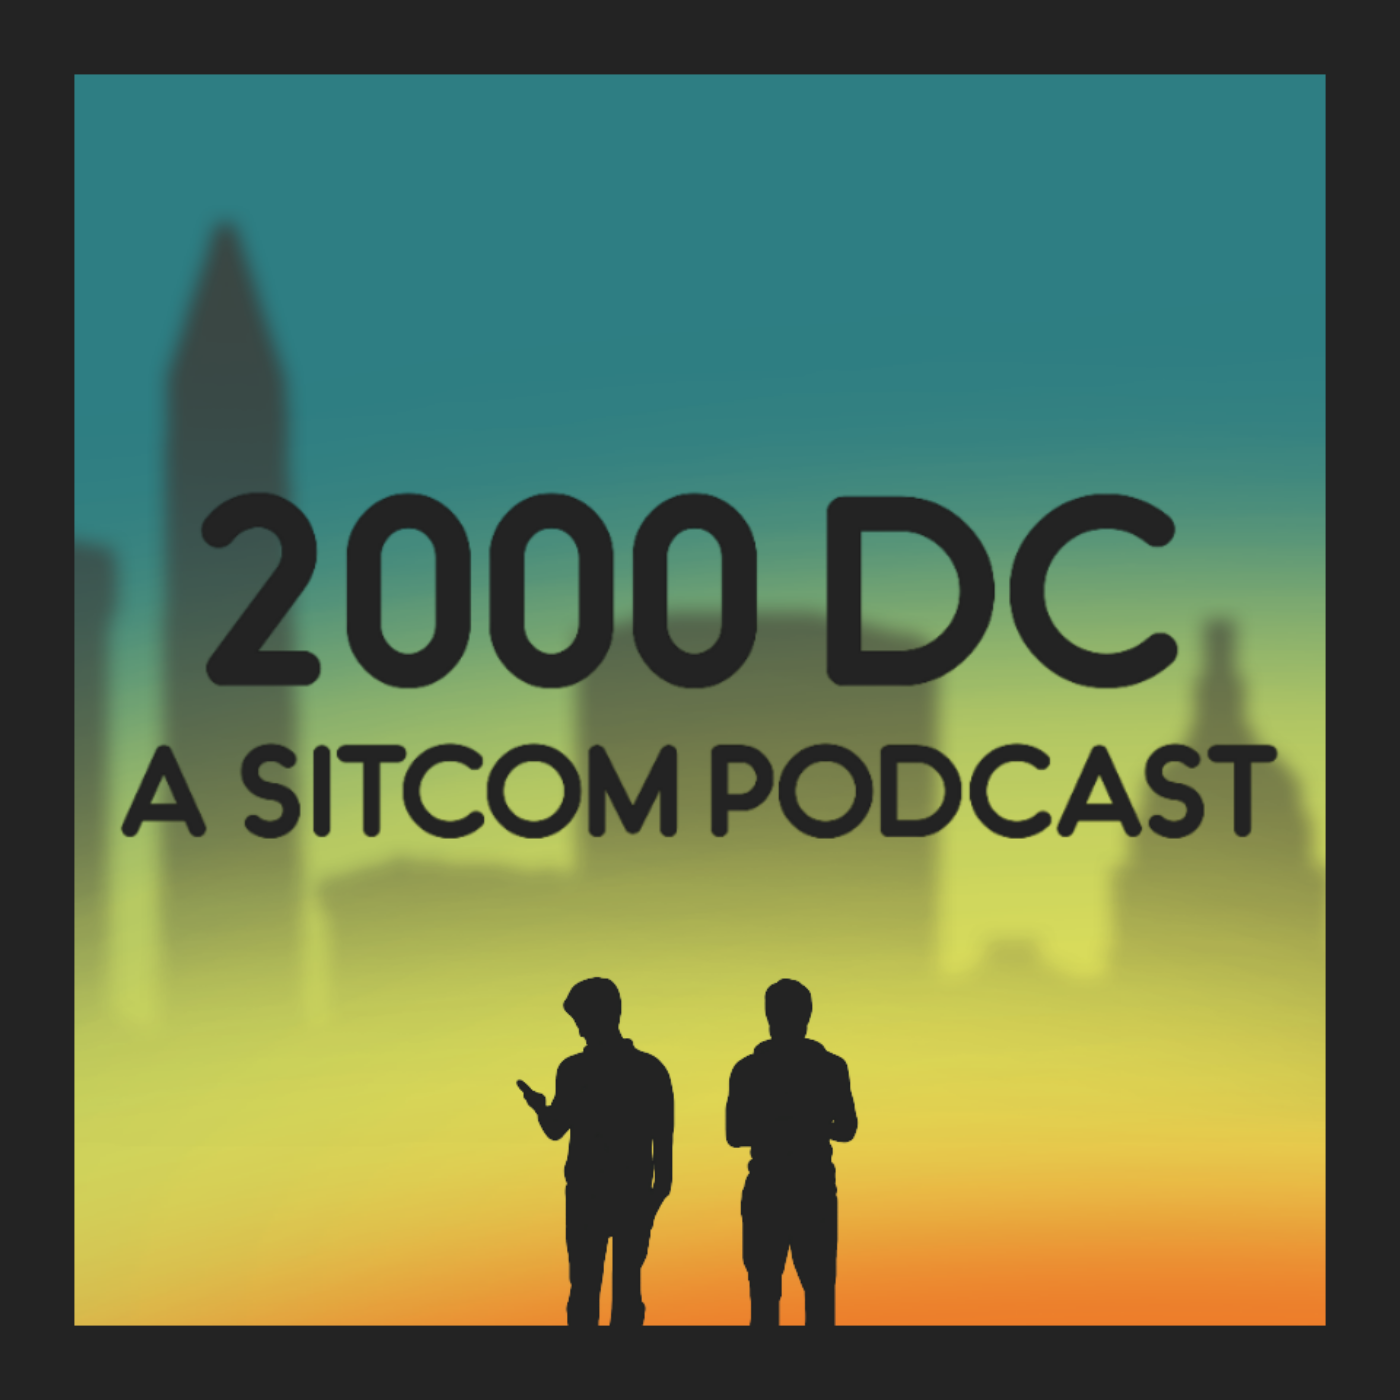 2000 DC - A Sitcom Podcast